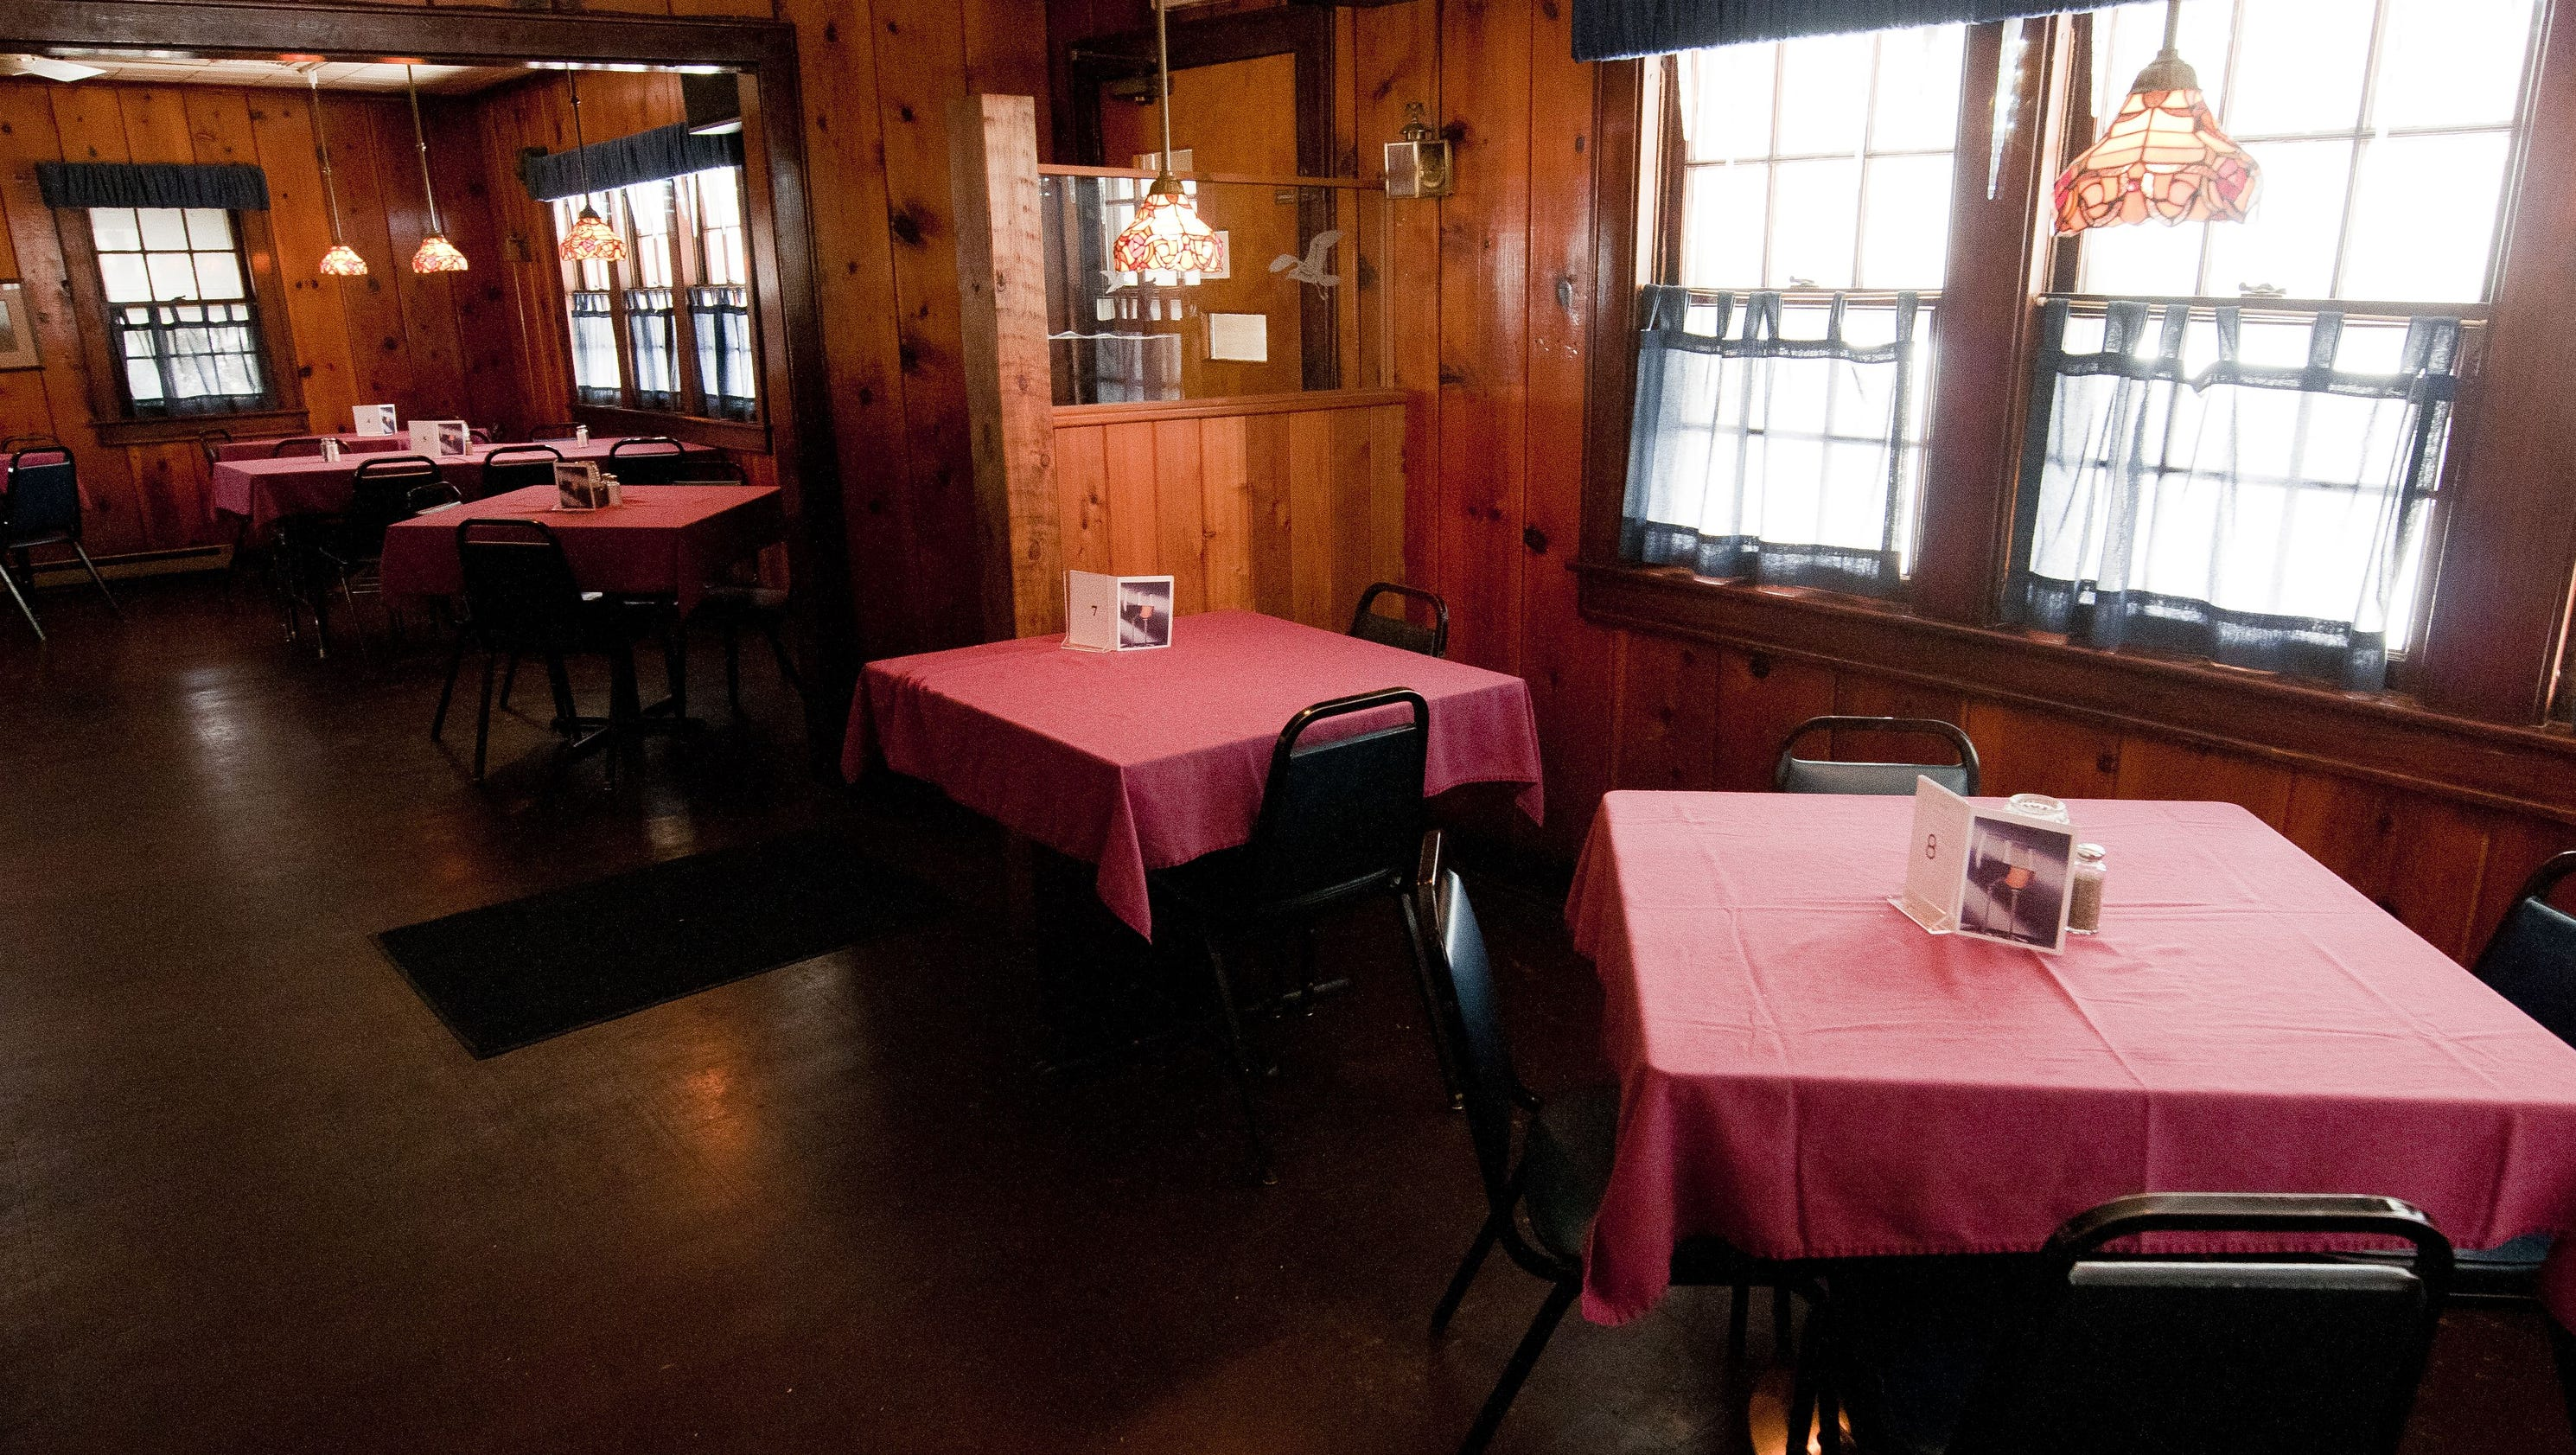 Rock Falls Supper Club reopens under Kevin Burkel s ownership